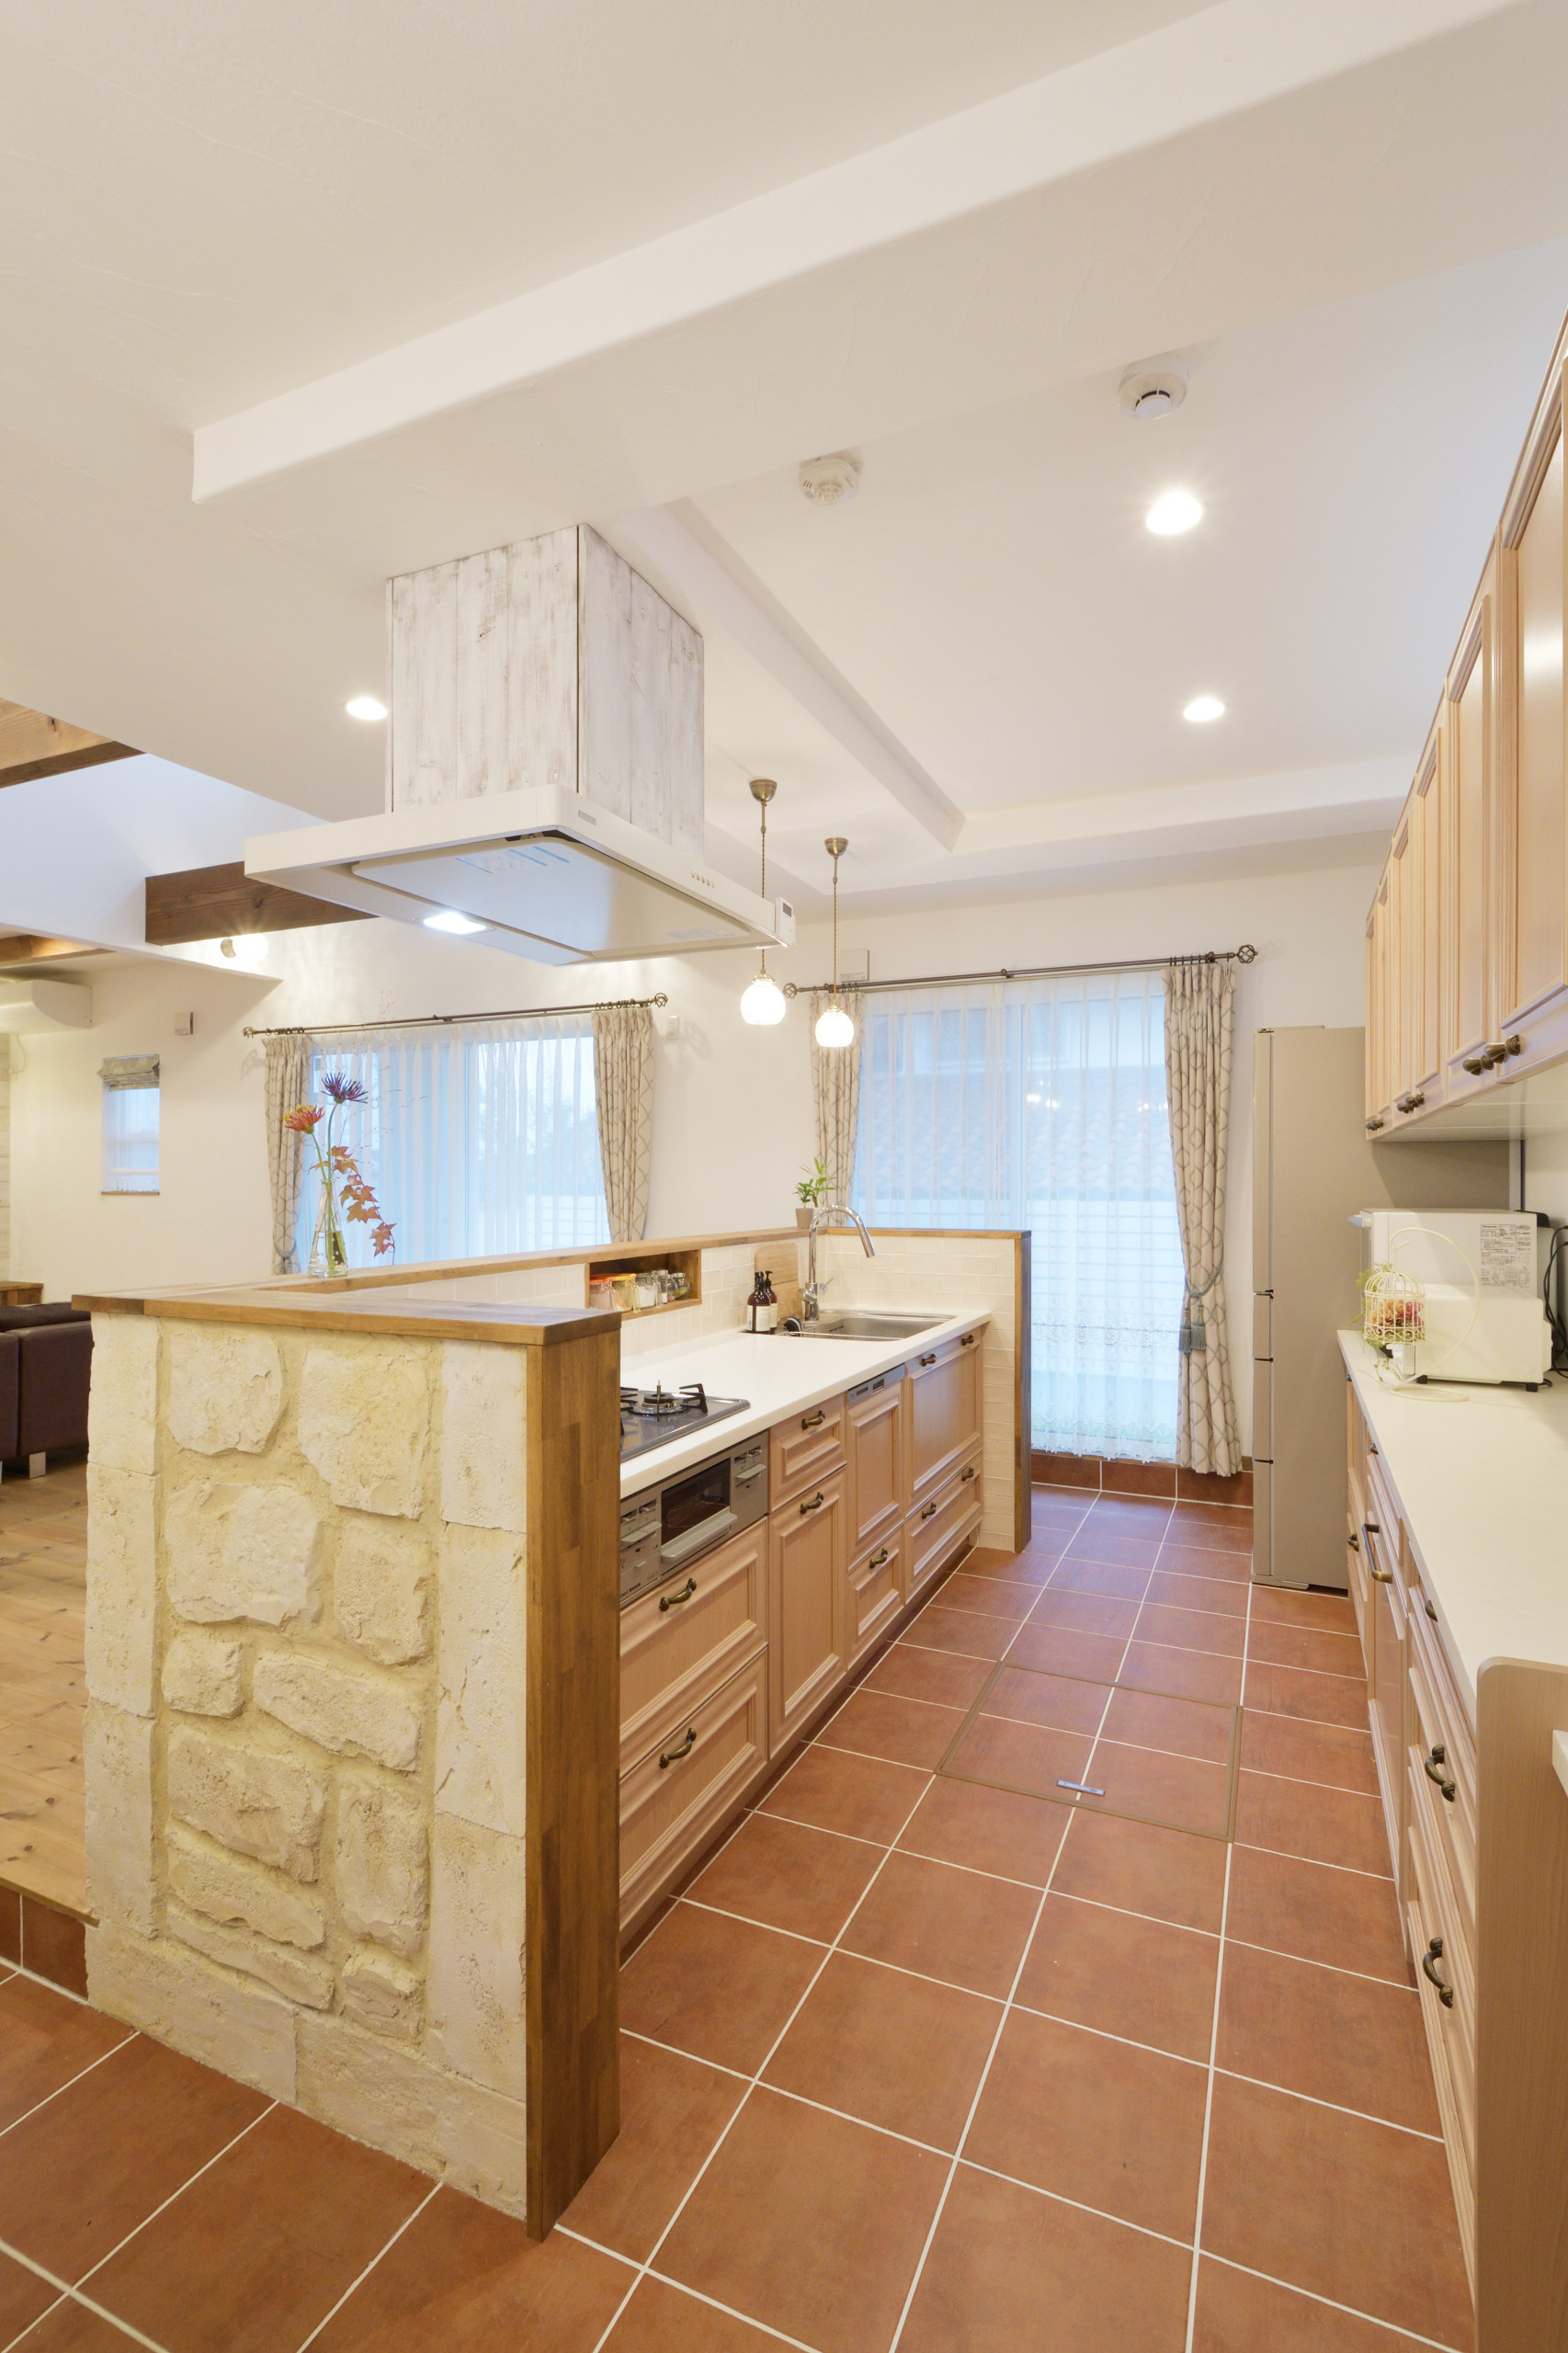 Penisola Cucina In Muratura 75 beautiful shabby-chic style kitchen with brown backsplash